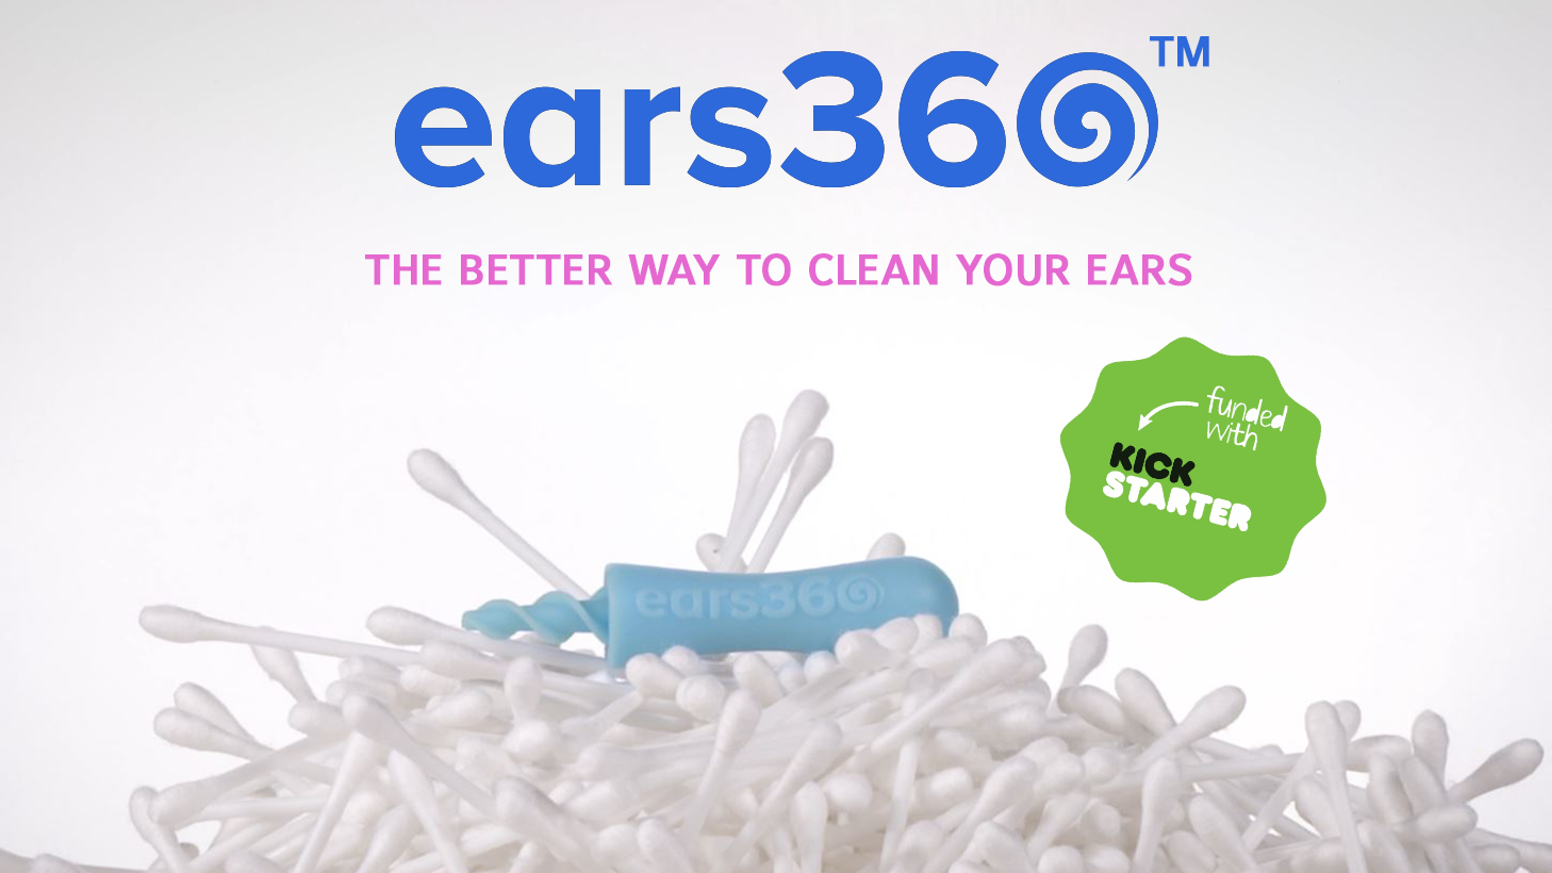 The Better way to clean your ears.